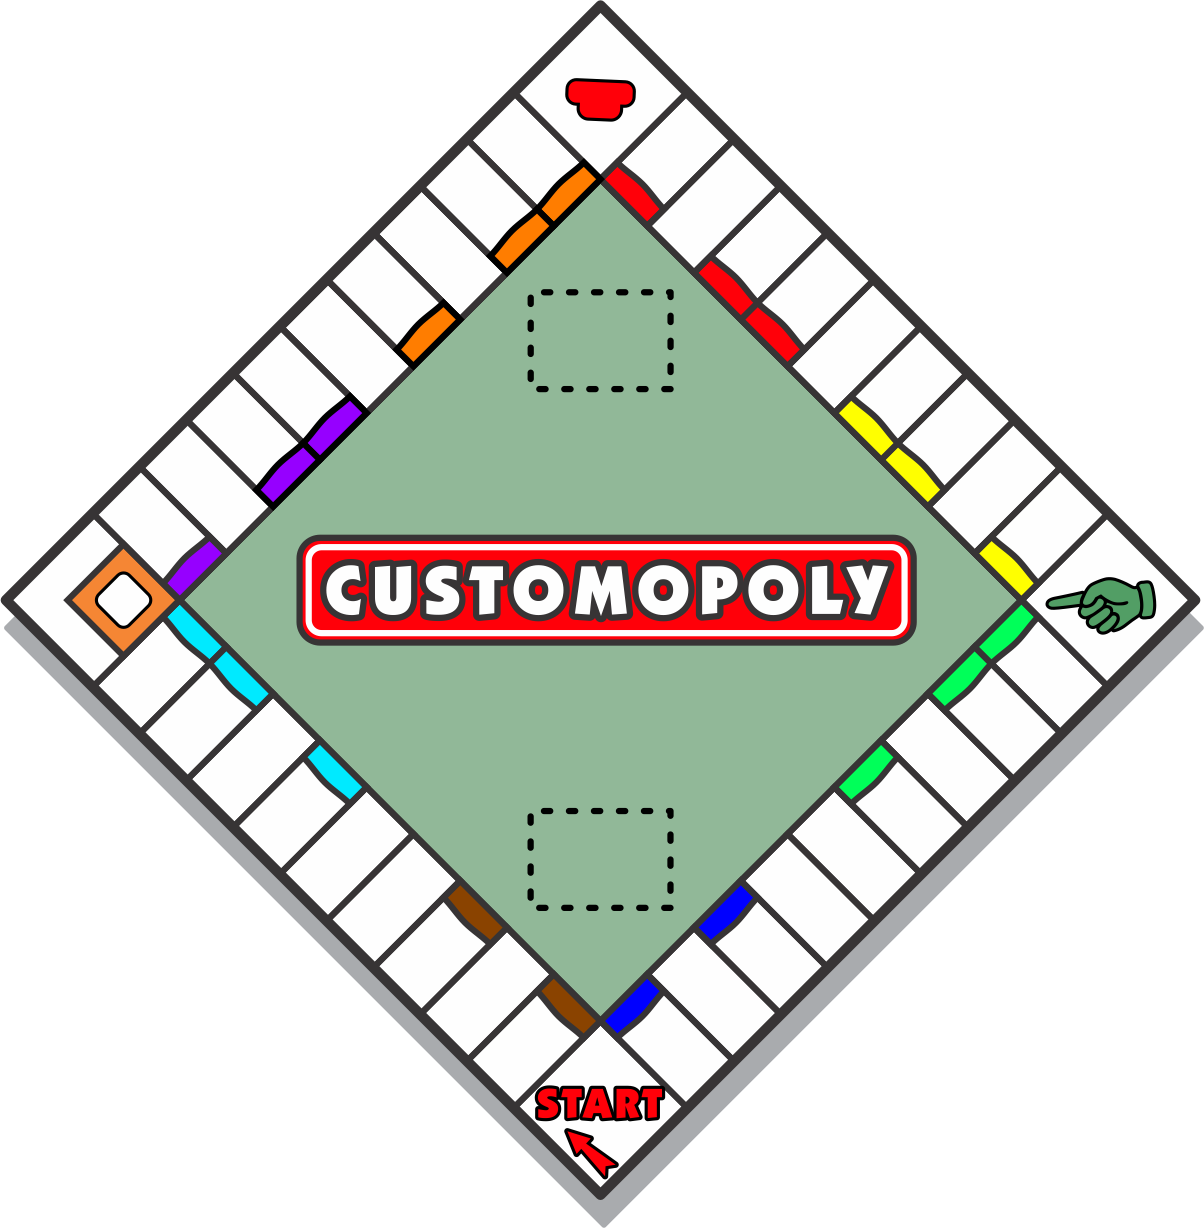 Custom Monopoly Game Manufacturer